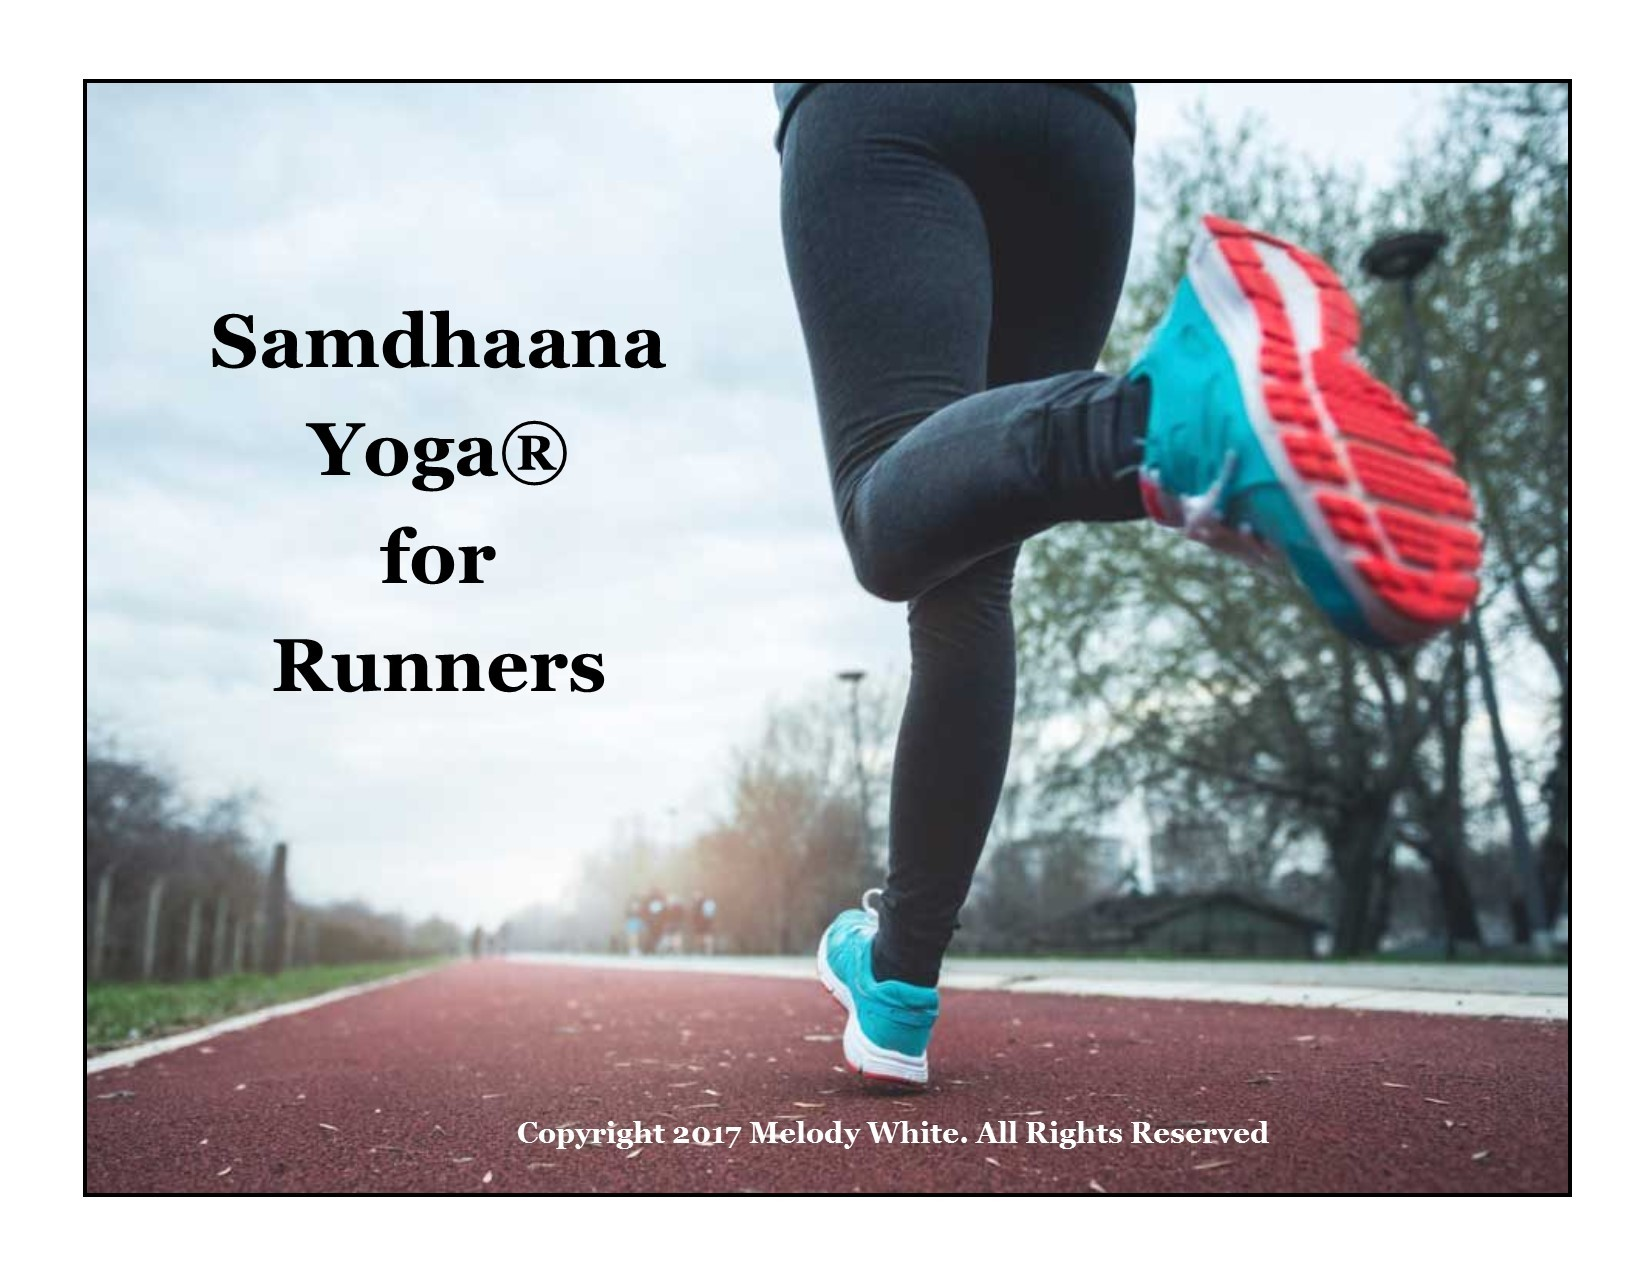 samdhaana yoga for runners